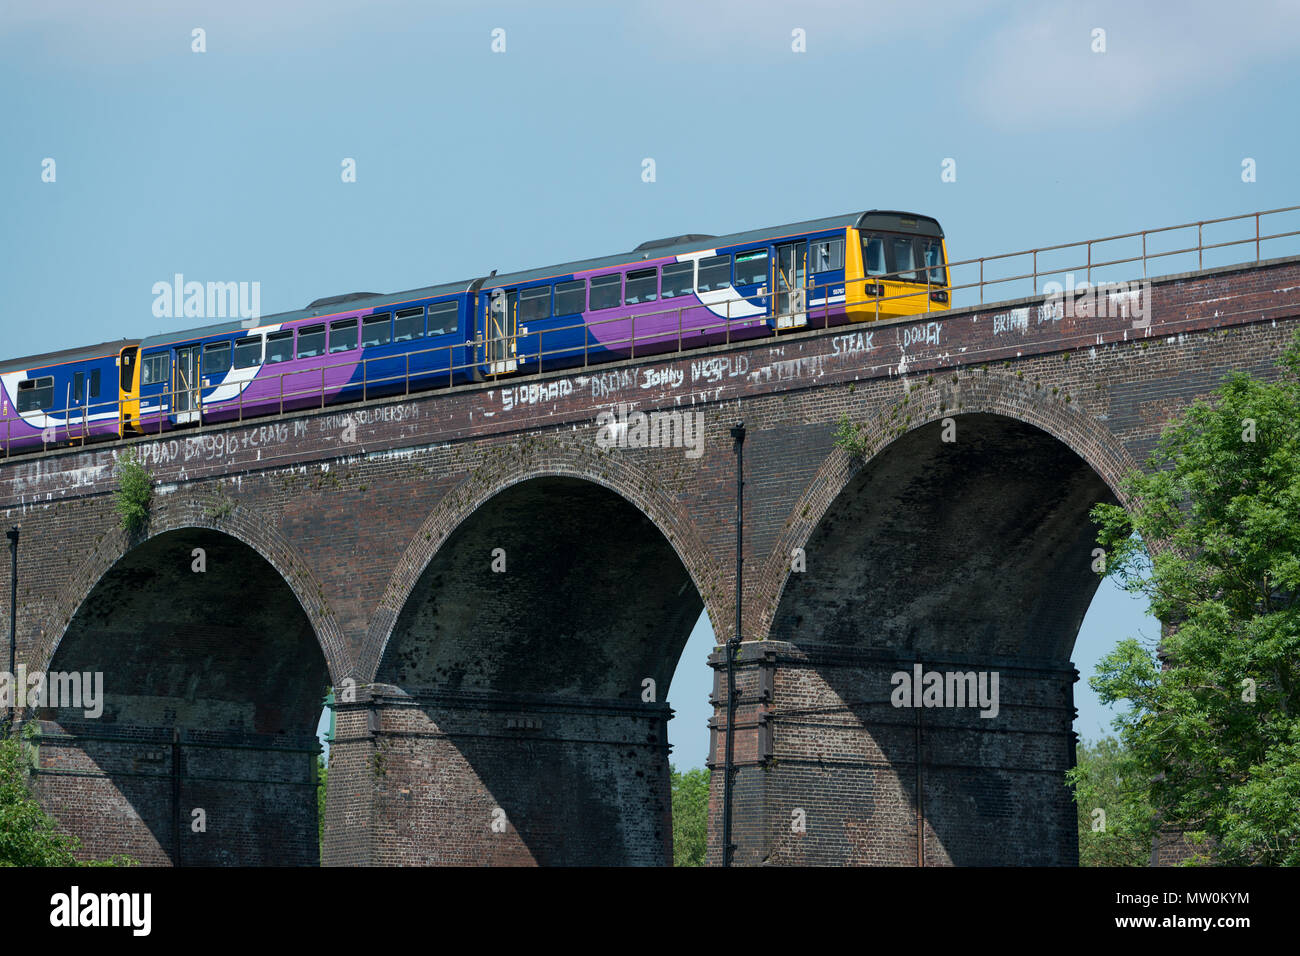 A Northern Rail pacer train passes over a railway viaduct which crosses Reddish Vale Country Park in Stockport, Greater Manchester, UK - Stock Image